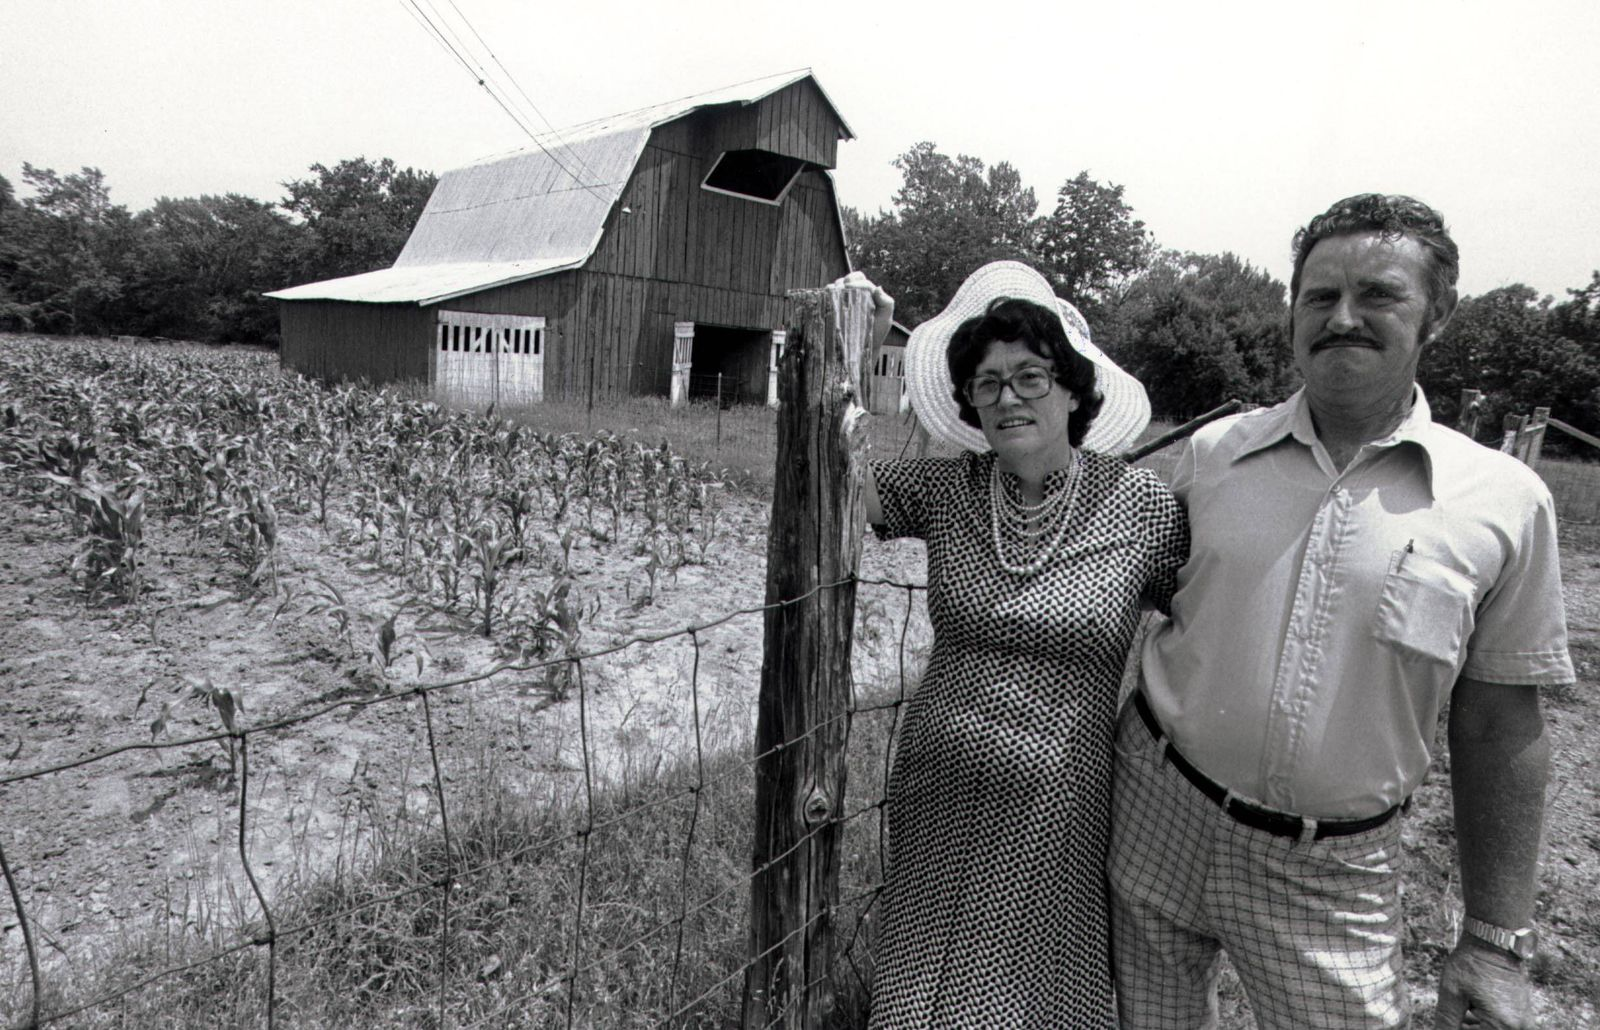 Jan 1 2011 28592 DOLLY PARTON S PARENTS AVIELEE AND ROBERT LEE PARTON PHOTOSUPPLIED BY PUBLICAT